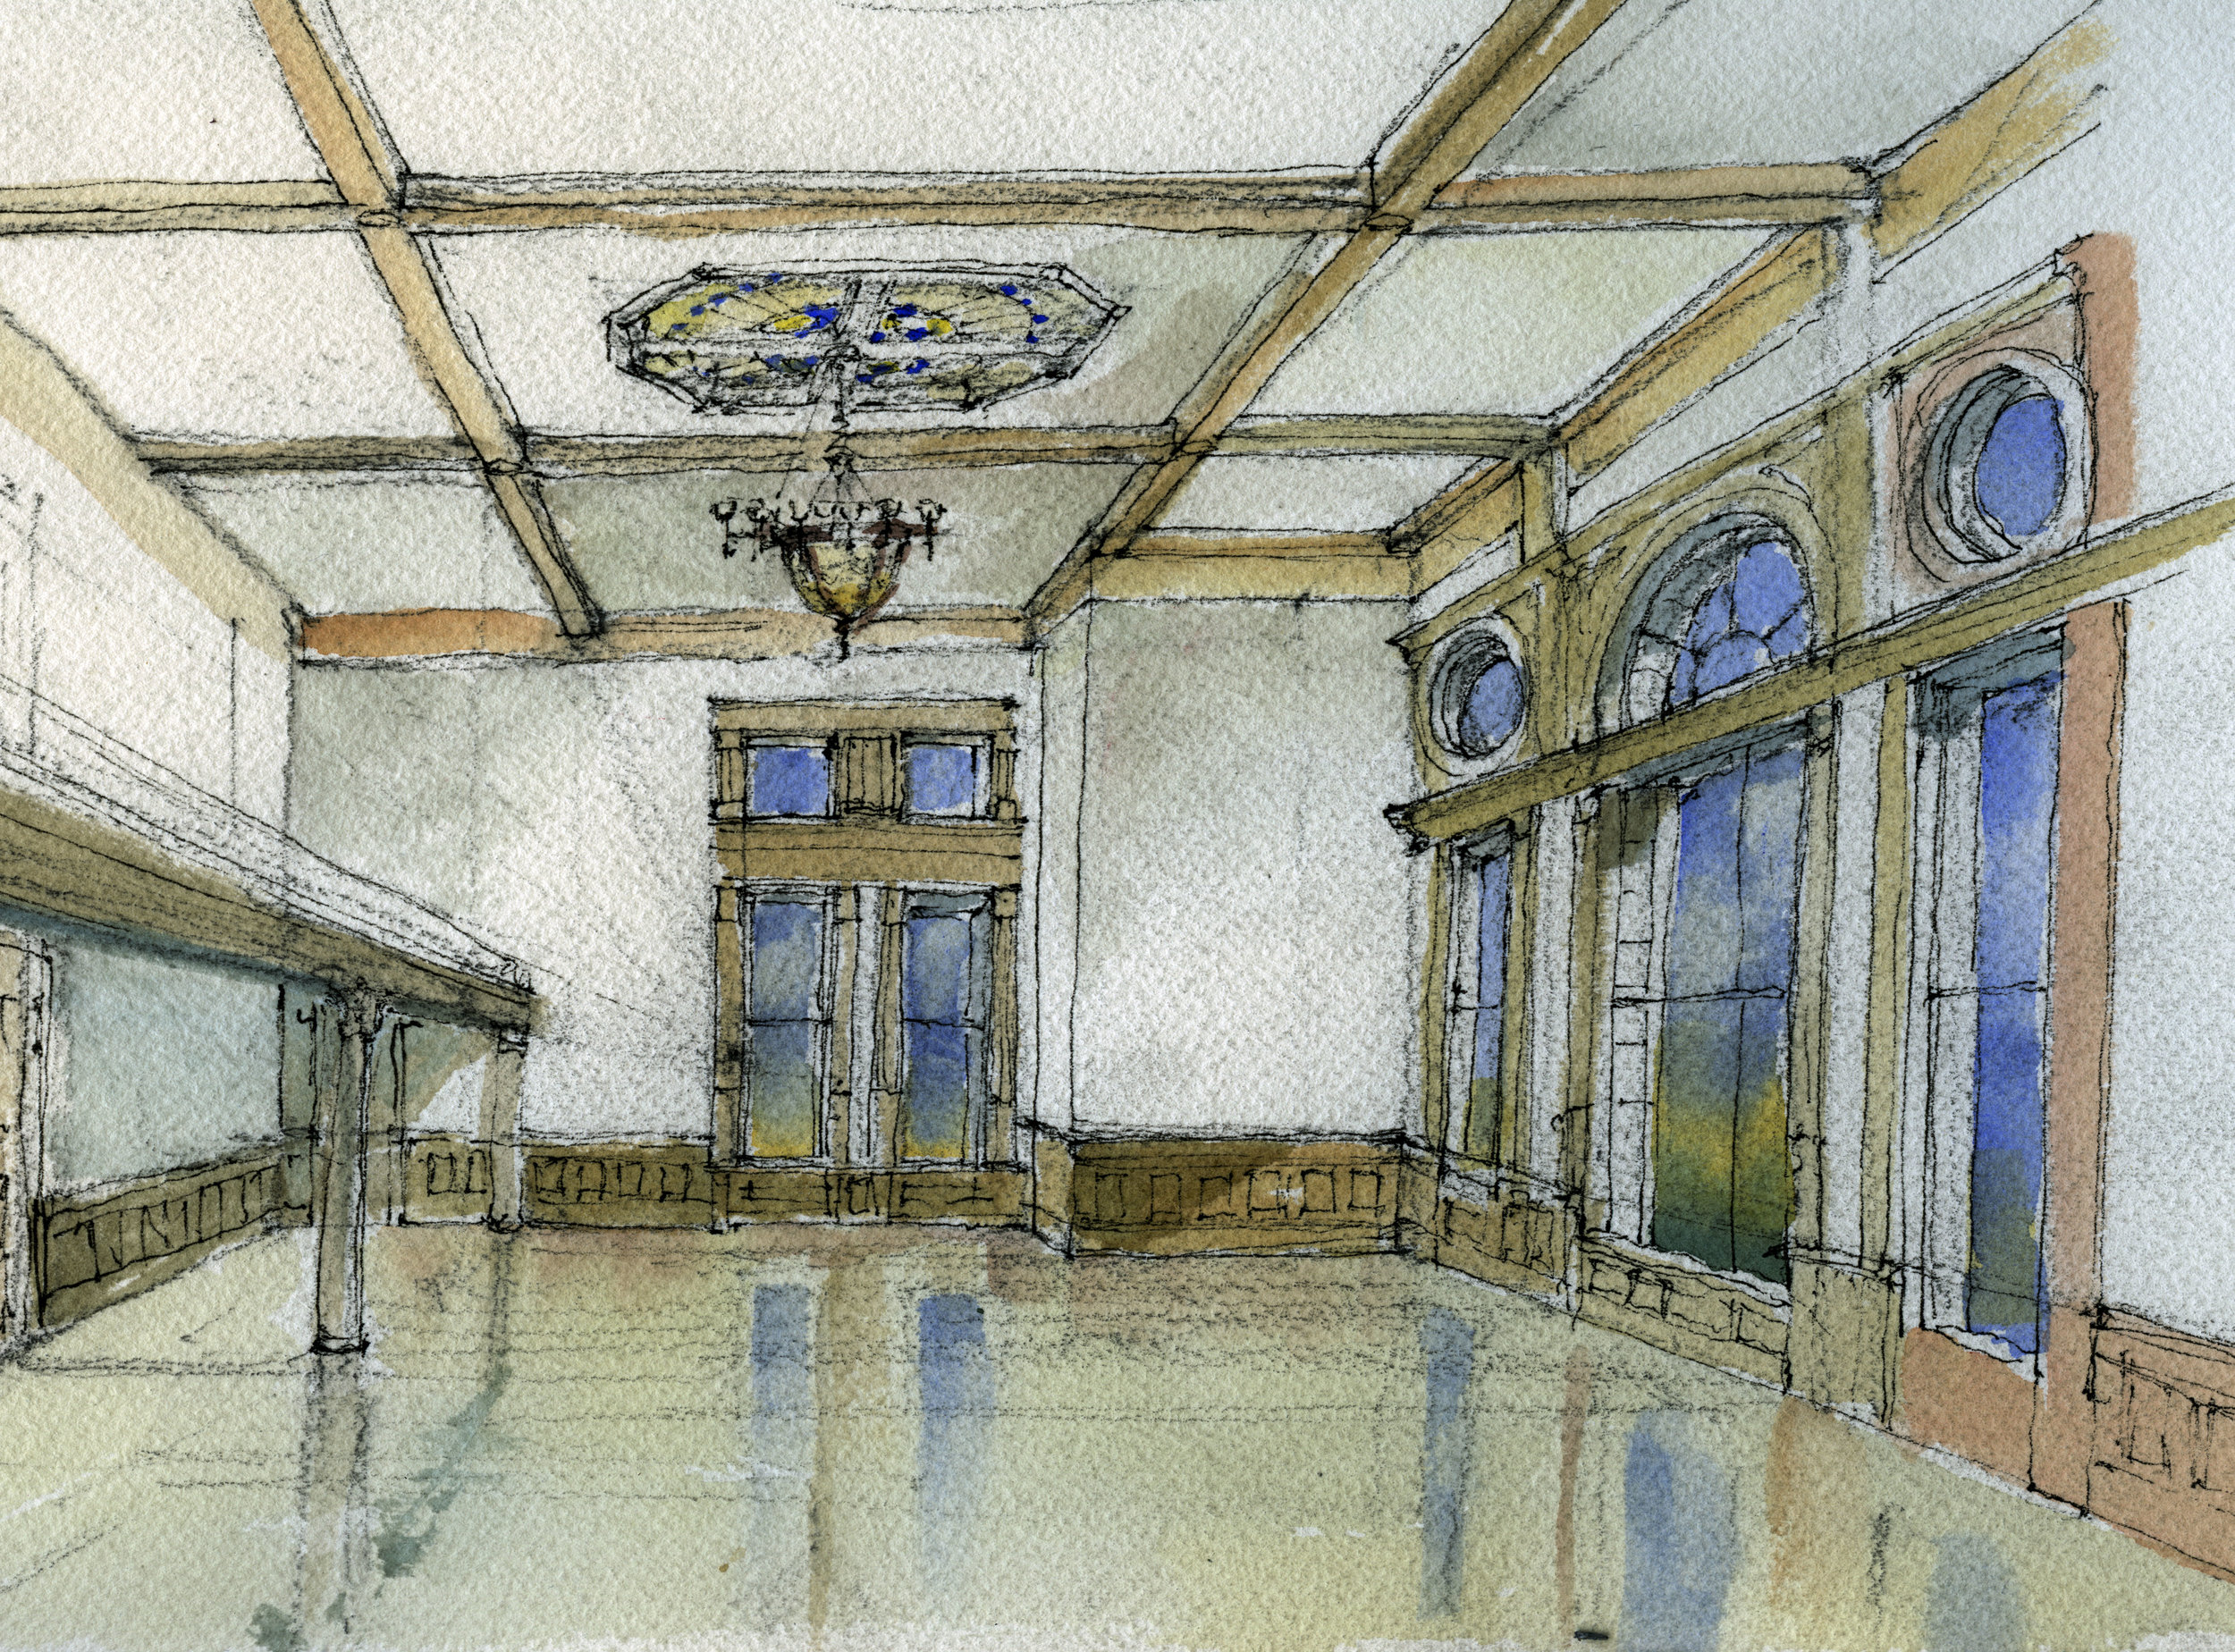 The restored room is envisioned in a watercolor design sketch by Paul Brown, a member of the project team. The stained glass laylight and the chandelier were in another room and will be returned to their original location in the historic chamber.